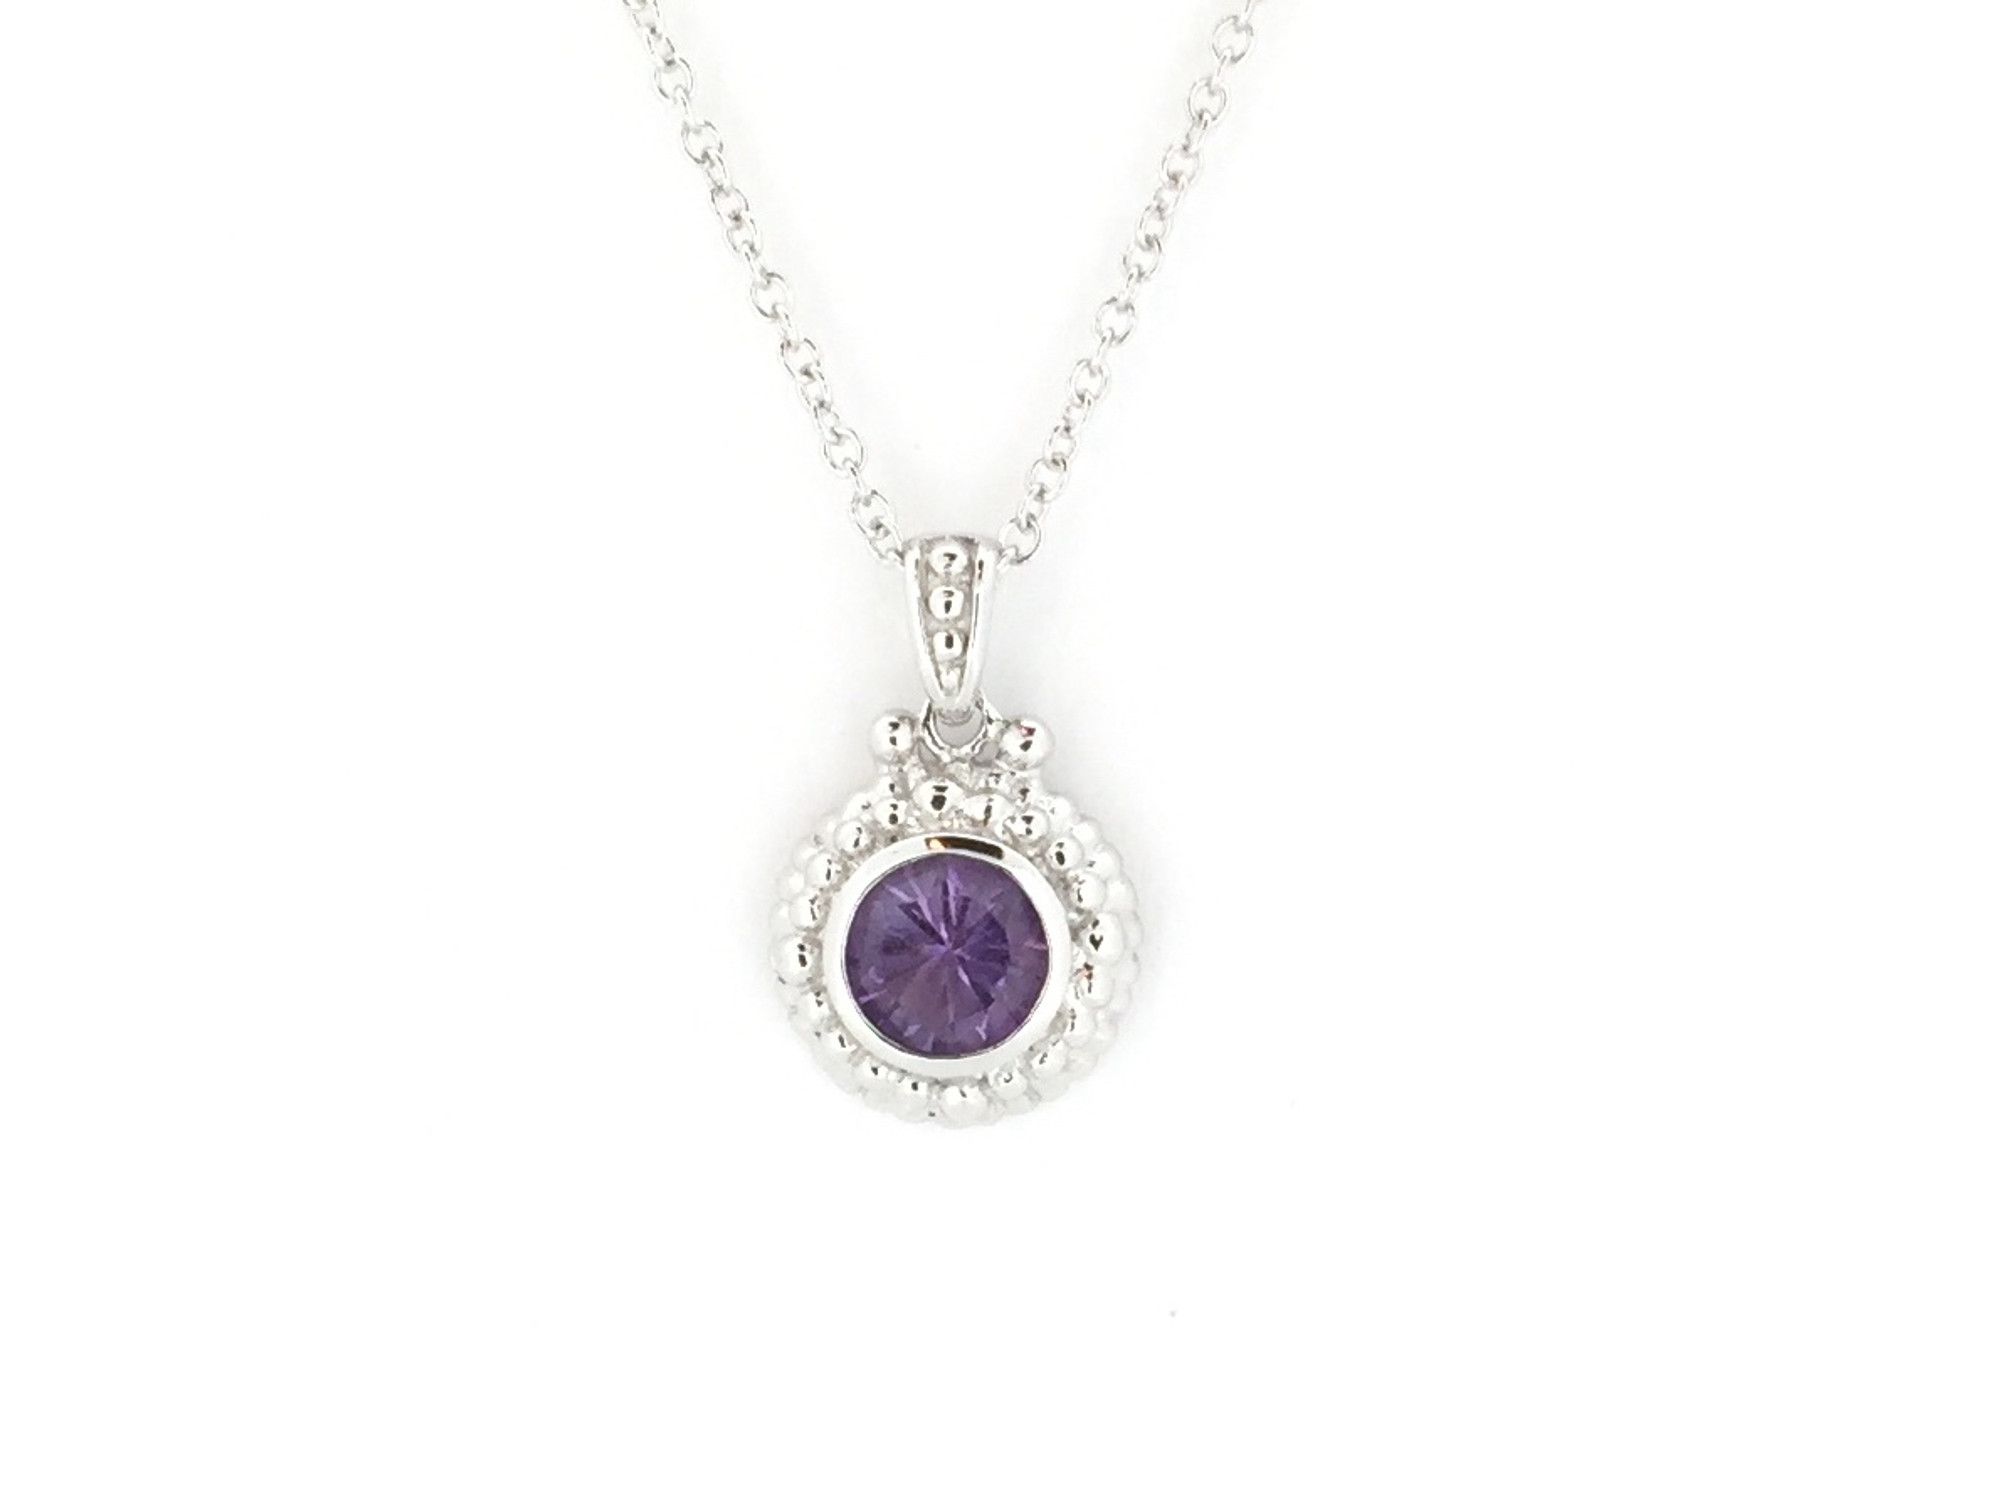 6a7fd50b7 Round Sterling Silver/Amethyst Necklace - Mima's Of Warwick, LLC